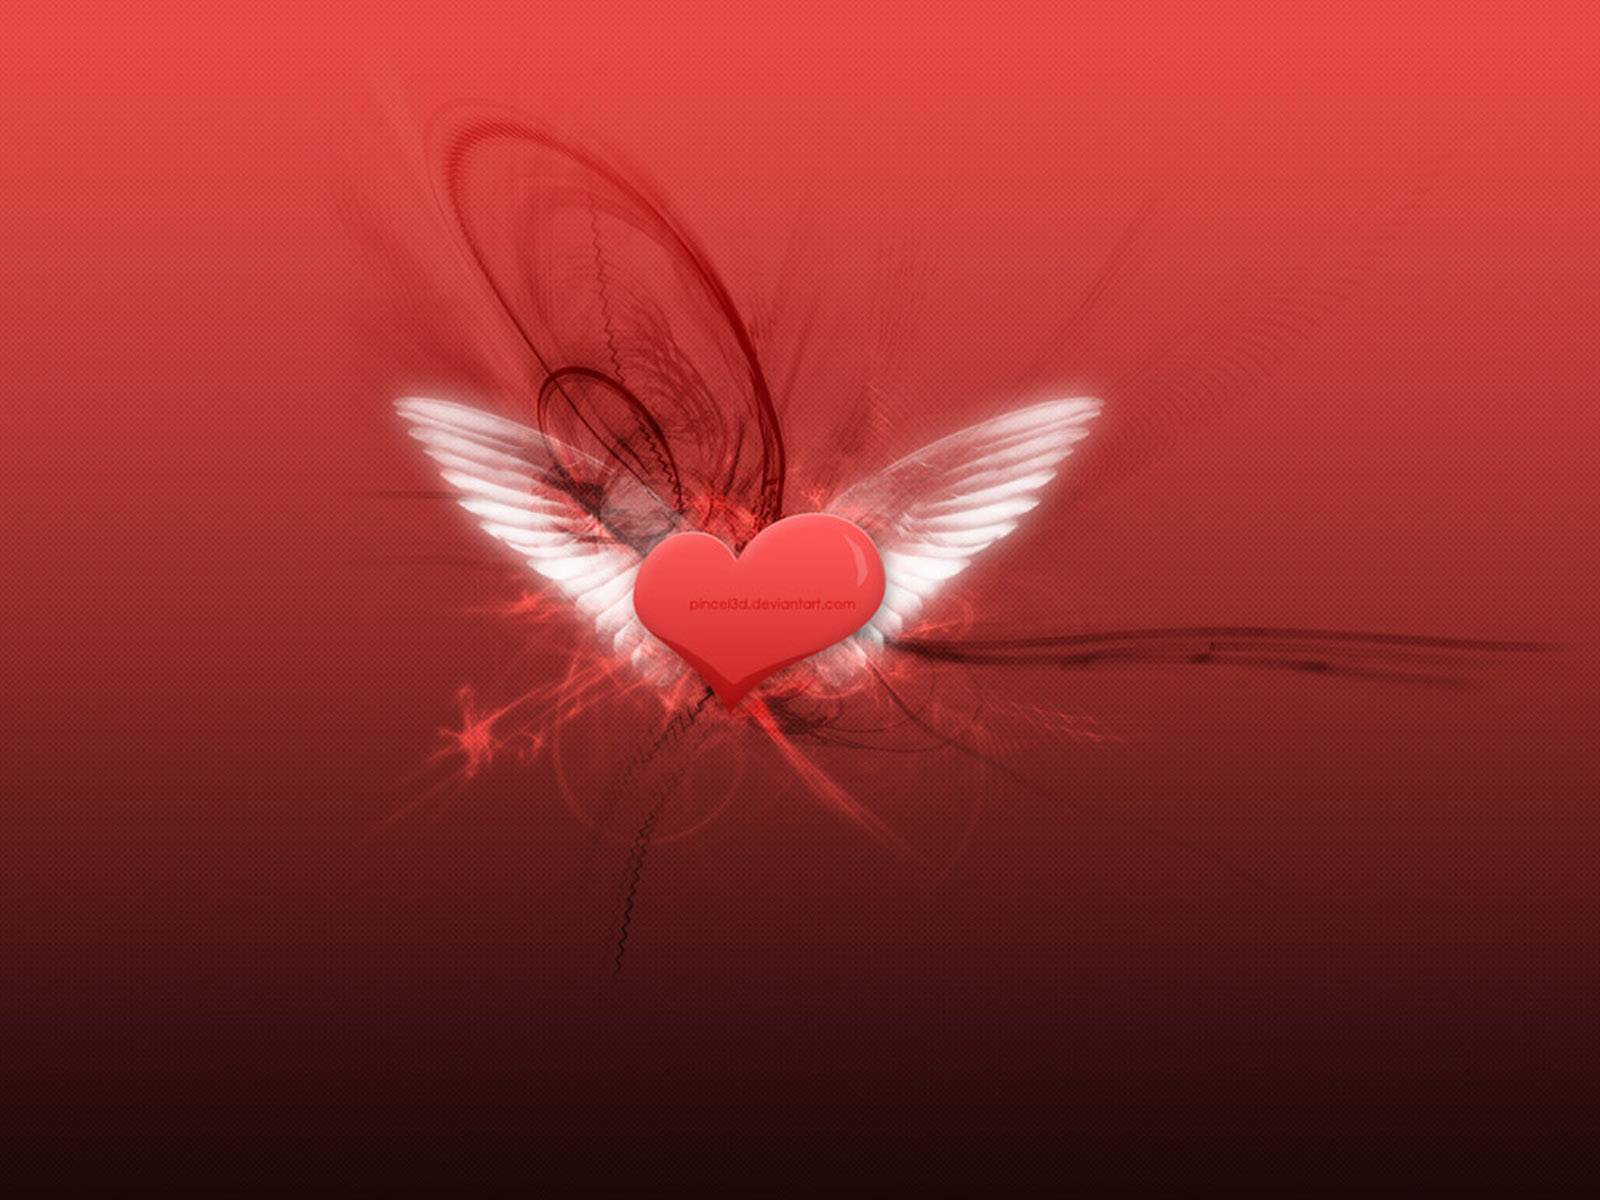 beautiful heart with wings wings 1600x1200